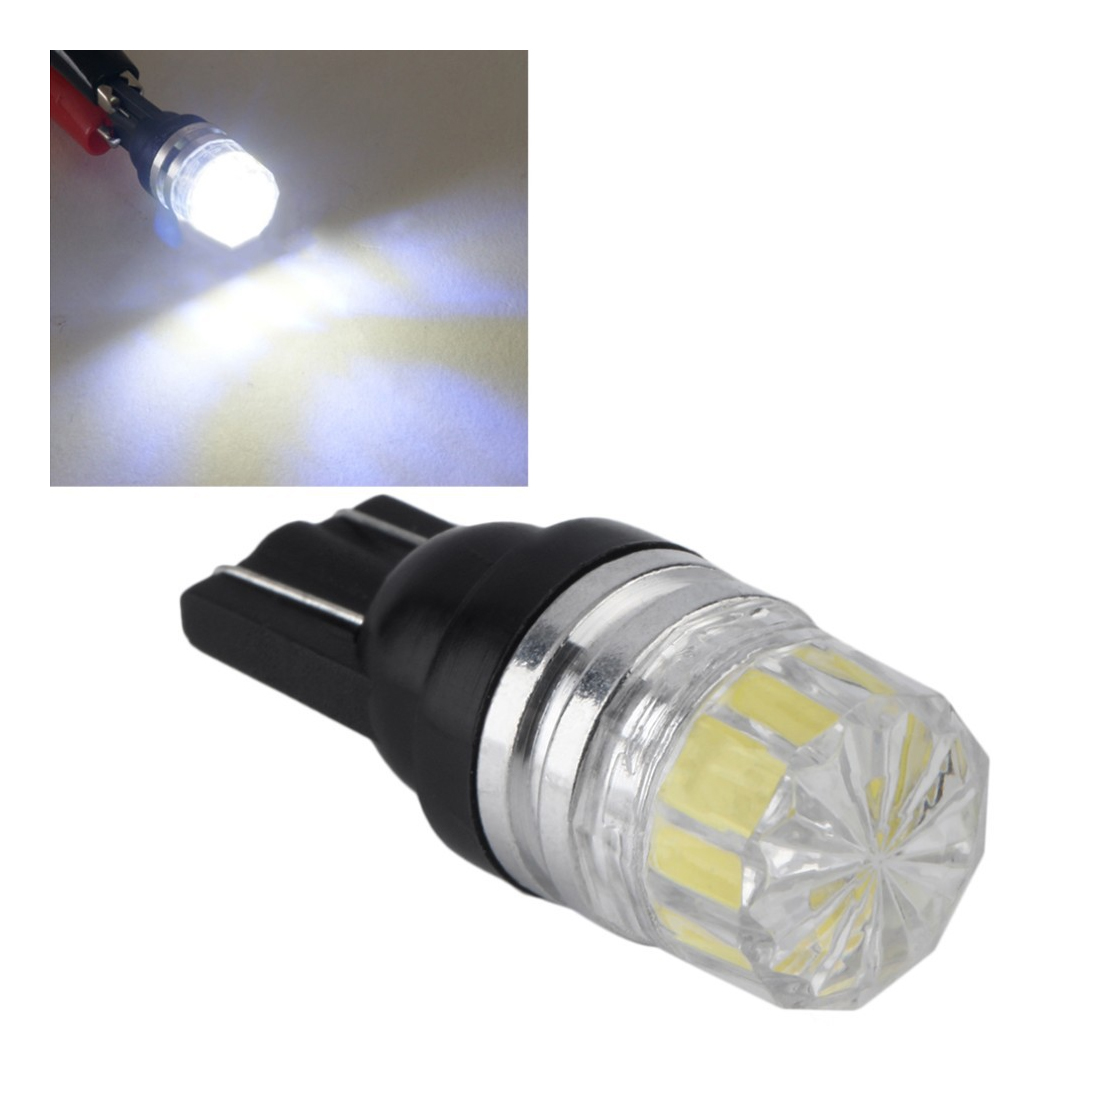 Tonewan High quality 2PCS Hot Sale!!! New White 2 LED 5630 SMD T10 W5W Wedge Lens Light Car Vehicle Bulb Lamp DC 12V image